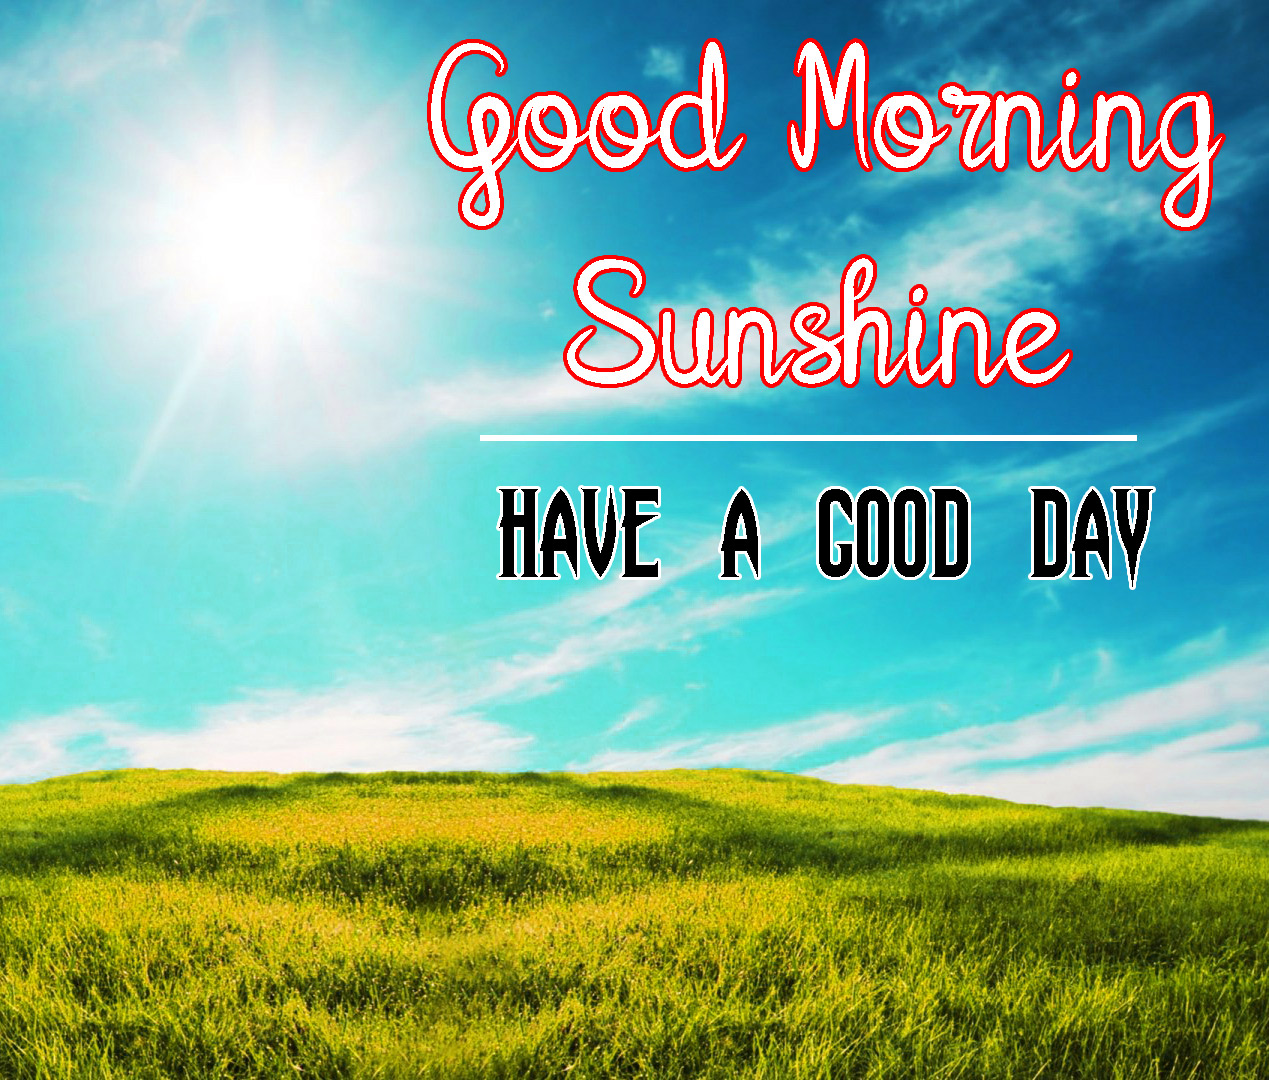 Sunsine Good Morning Images Pics For Whatsapp / Facebook